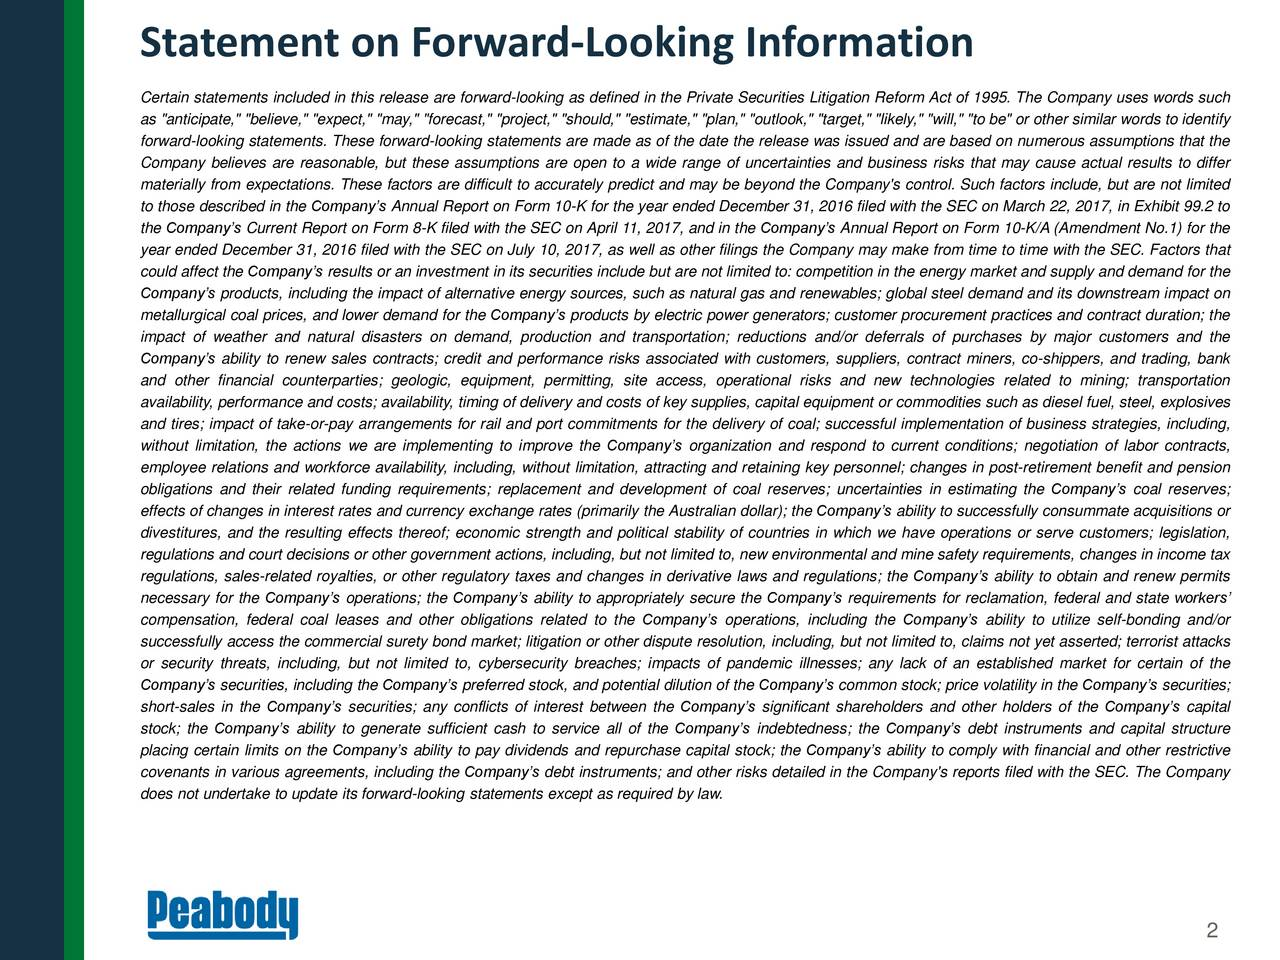 """Certain statements included in this release are forward-looking as defined in the Private Securities Litigation Reform Act of 1995. The Company uses words such as """"anticipate,"""" """"believe,"""" """"expect,"""" """"may,"""" """"forecast,"""" """"project,"""" """"should,"""" """"estimate,"""" """"plan,"""" """"outlook,"""" """"target,"""" """"likely,"""" """"will,"""" """"to be"""" or other similar words to identify forward-looking statements. These forward-looking statements are made as of the date the release was issued and are based on numerous assumptions that the Company believes are reasonable, but these assumptions are open to a wide range of uncertainties and business risks that may cause actual results to differ materially from expectations. These factors are difficult to accurately predict and may be beyond the Company's control. Such factors include, but are not limited to those described in the Companys Annual Report on Form 10-K for the year ended December 31, 2016 filed with the SEC on March 22, 2017, in Exhibit 99.2 to the Companys Current Report on Form 8-K filed with the SEC on April 11, 2017, and in the Companys Annual Report on Form 10-K/A (Amendment No.1) for the year ended December 31, 2016 filed with the SEC on July 10, 2017, as well as other filings the Company may make from time to time with the SEC. Factors that could affect the Companys results or an investment in its securities include but are not limited to: competition in the energy market and supply and demand for the Companys products, including the impact of alternative energy sources, such as natural gas and renewables; global steel demand and its downstream impact on metallurgical coal prices, and lower demand for the Companys products by electric power generators; customer procurement practices and contract duration; the impact of weather and natural disasters on demand, production and transportation; reductions and/or deferrals of purchases by major customers and the Companys ability to renew sales contracts; credit and performance risks associated with custo"""